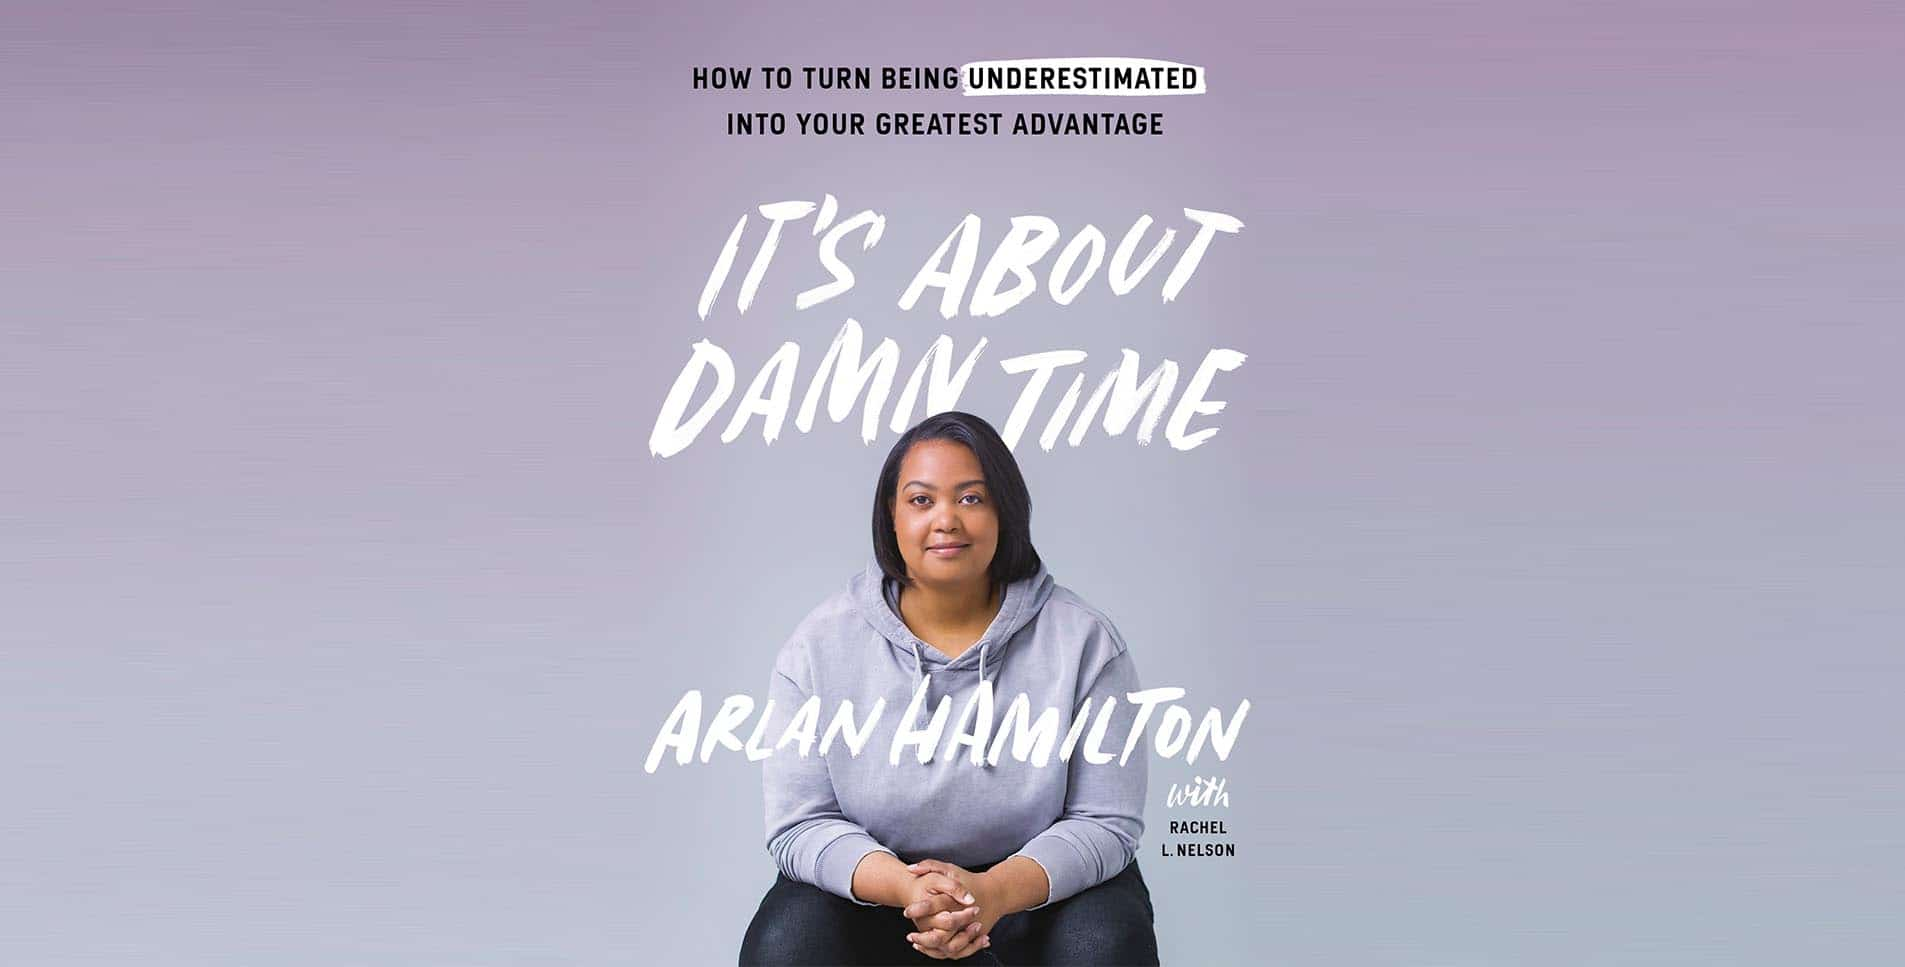 https://gravityspeakers.com/wp-content/uploads/Arlan-Hamilton-Home-Slider-Book-Cover-Its-About-Damn-Time.jpg